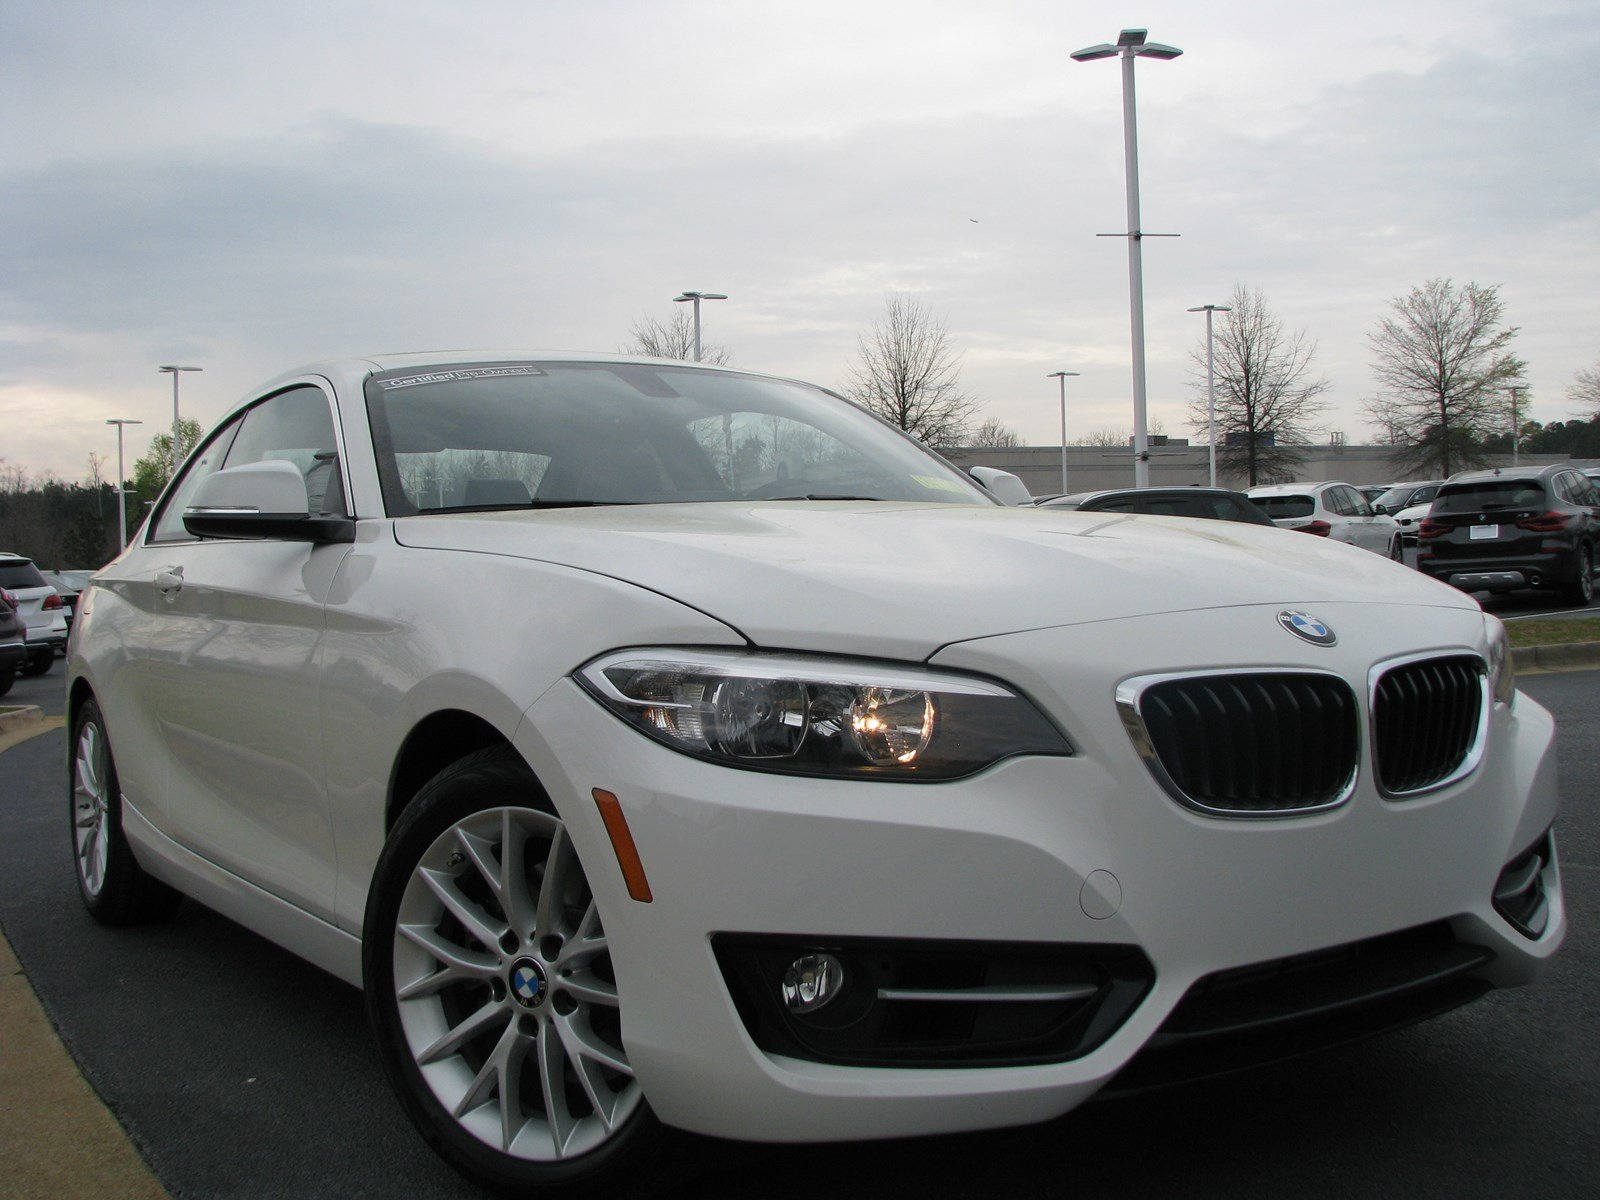 Certified PreOwned BMW Series I Dr Car In Columbus - 228i bmw